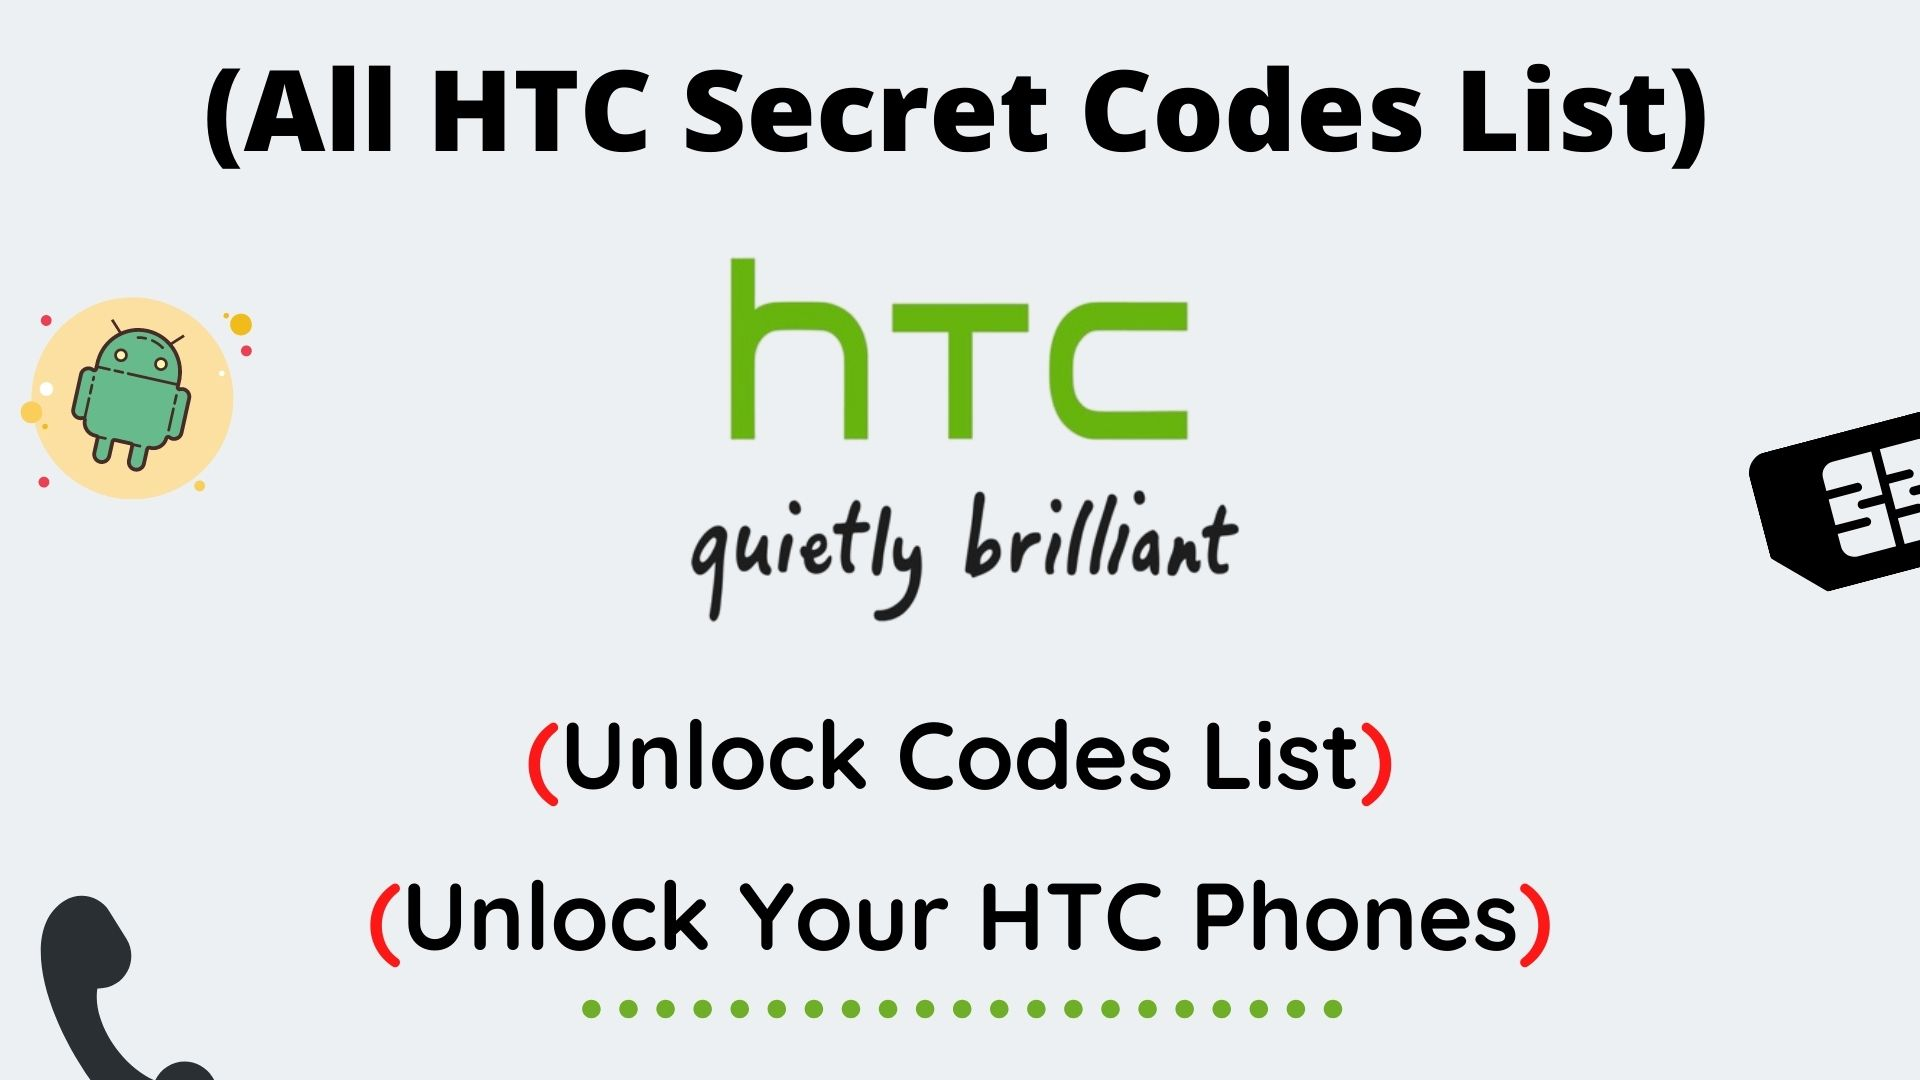 All HTC Secret Codes List